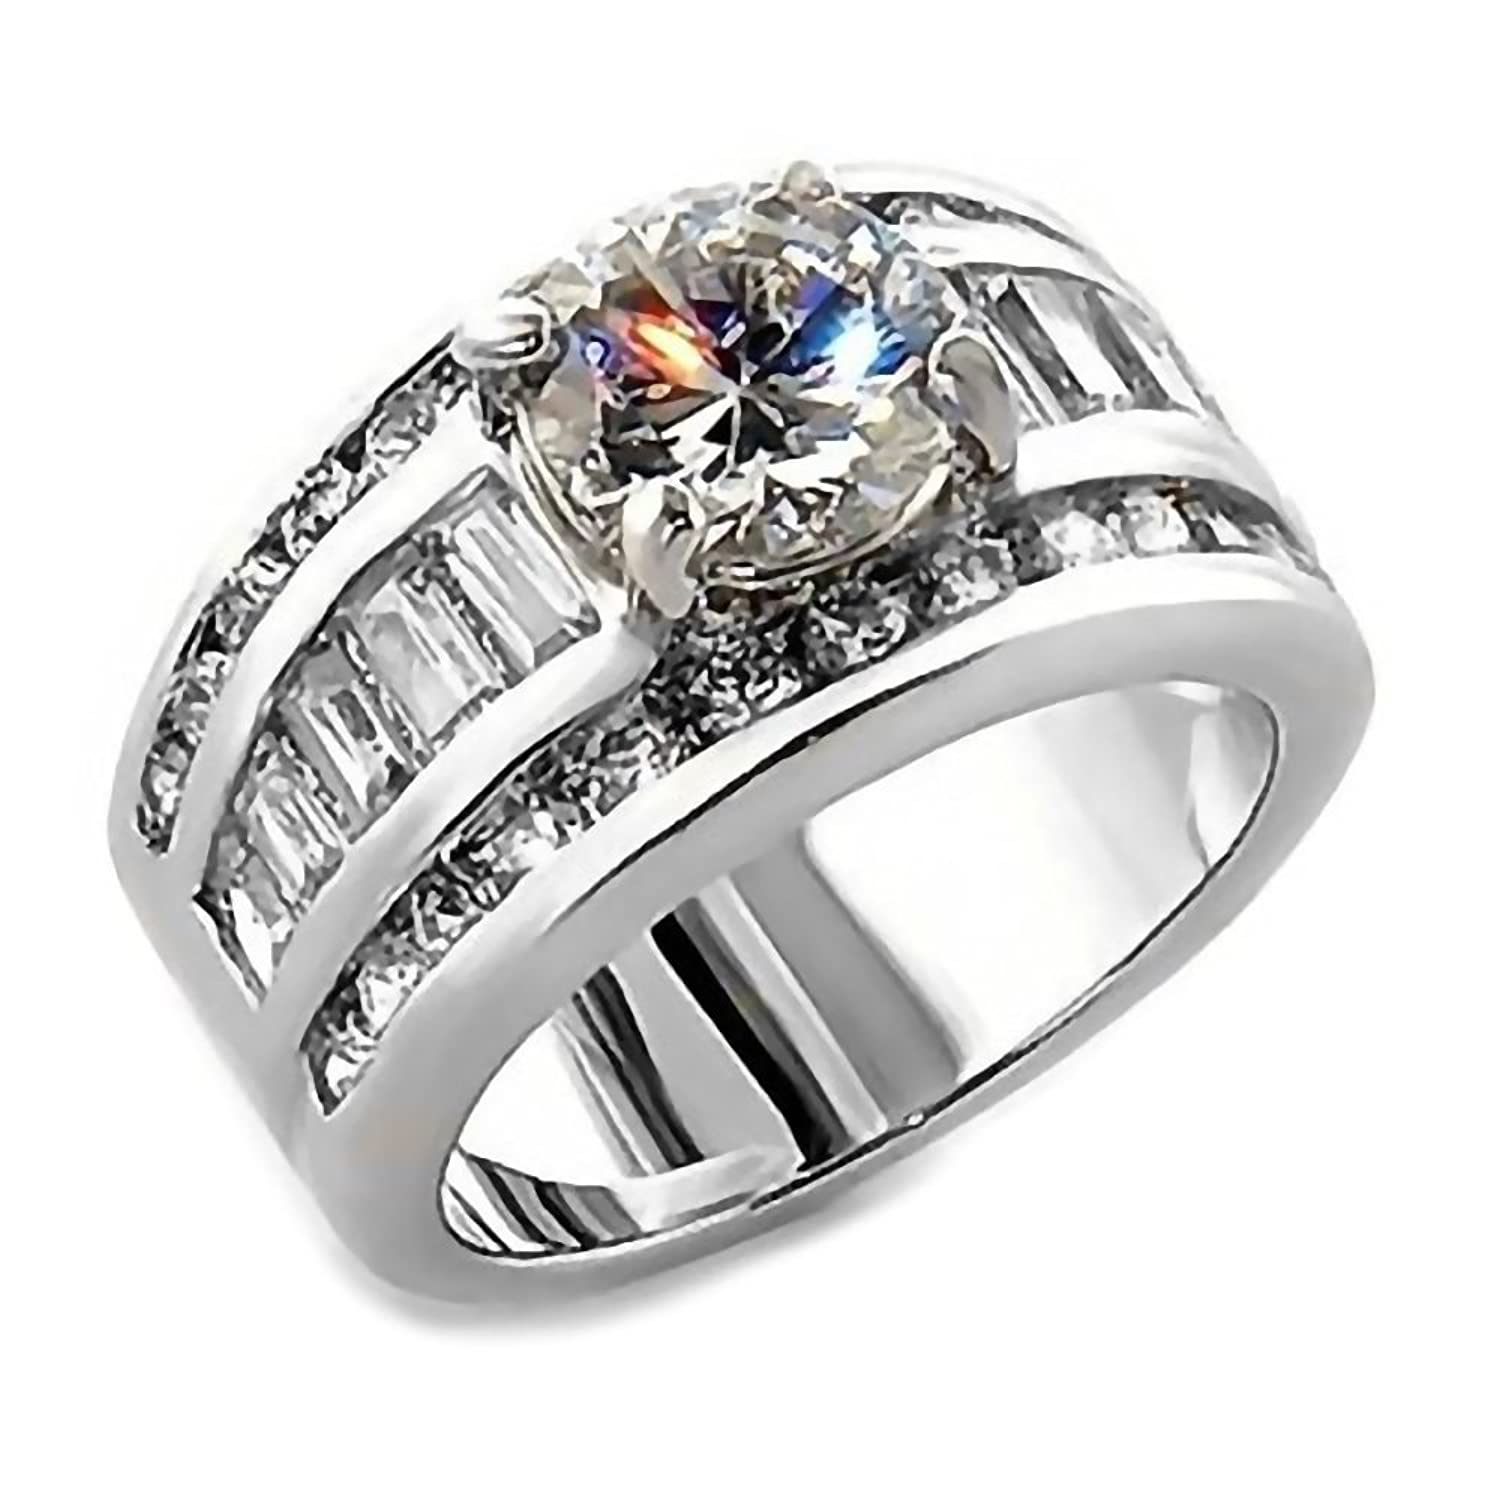 band wedding white gold half media ring eternity with engagement matching rings set